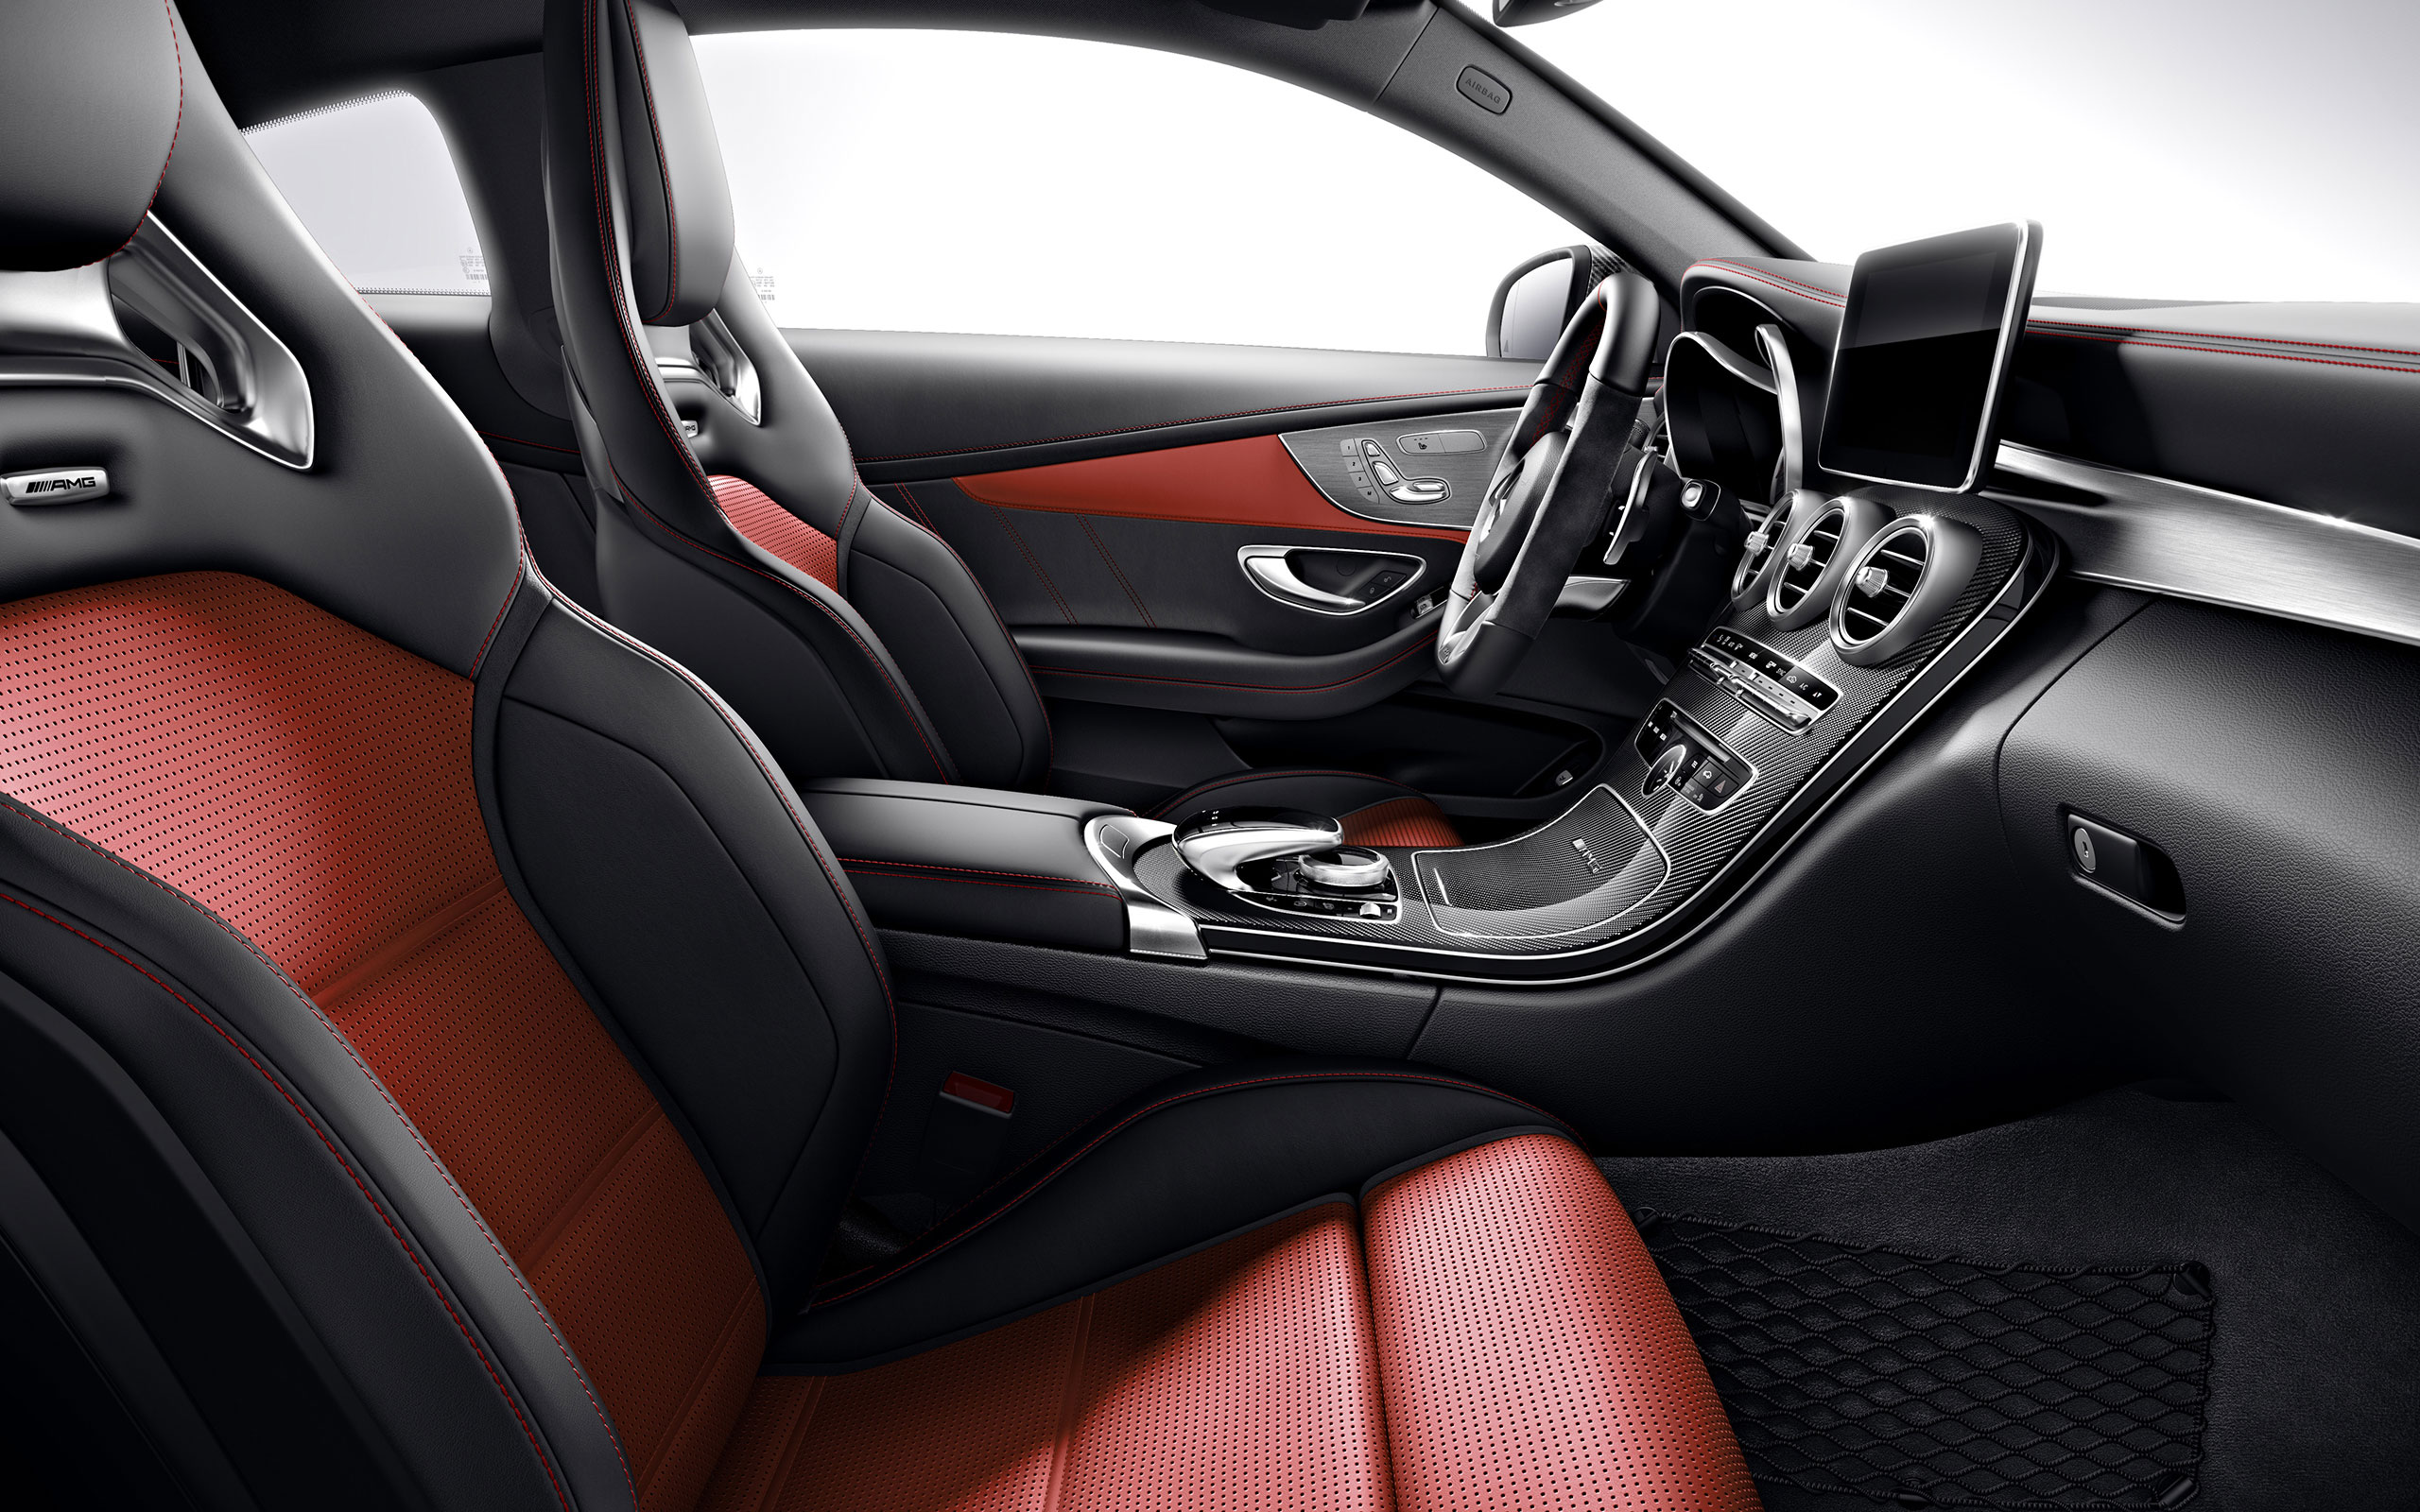 Amg C63 Coupe Future Vehicle Mercedes Benz